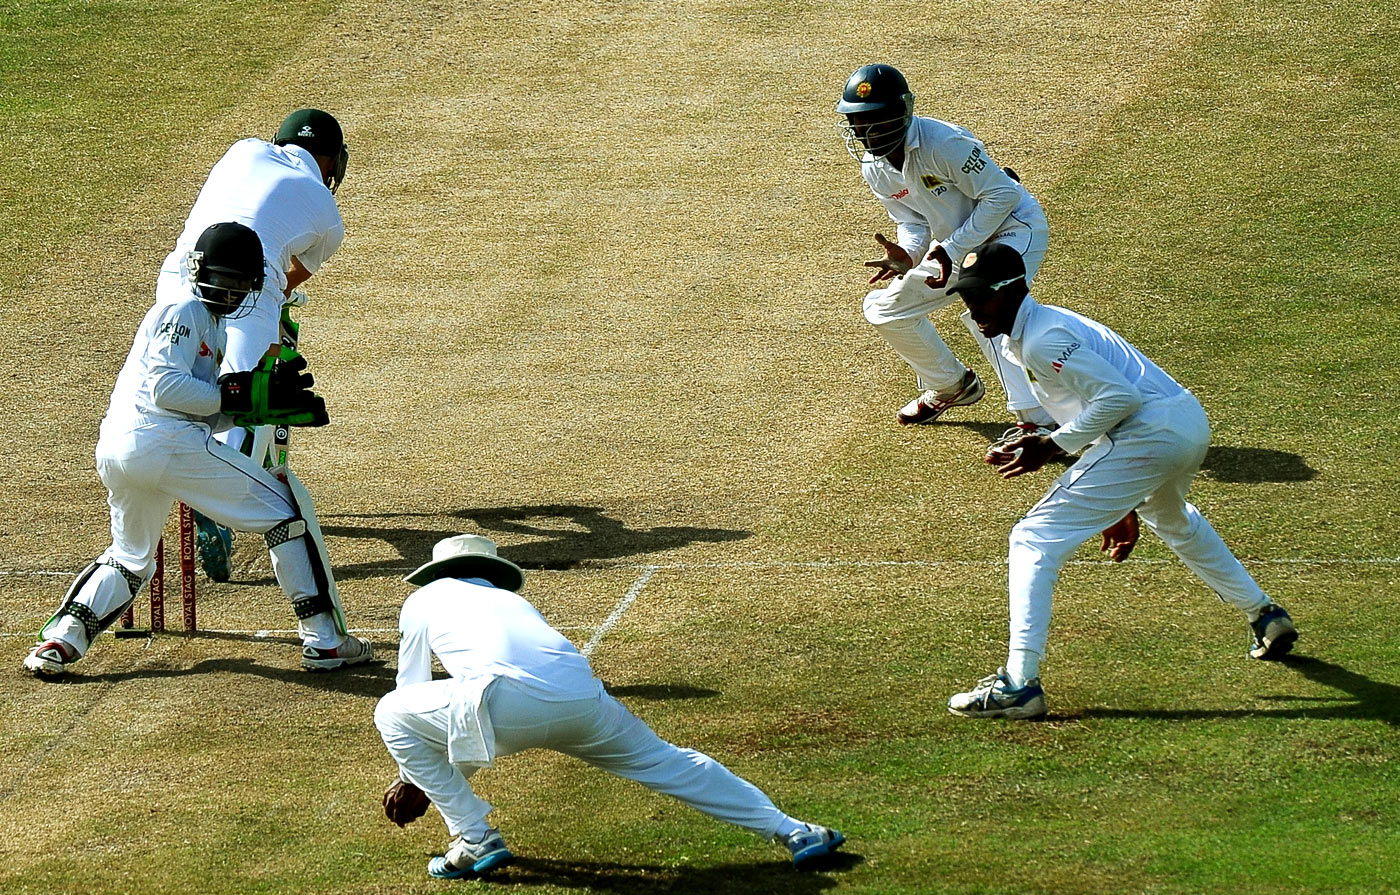 Against Sri Lanka you faced flight, turn, deception and a human snare in the form of Jayawardene